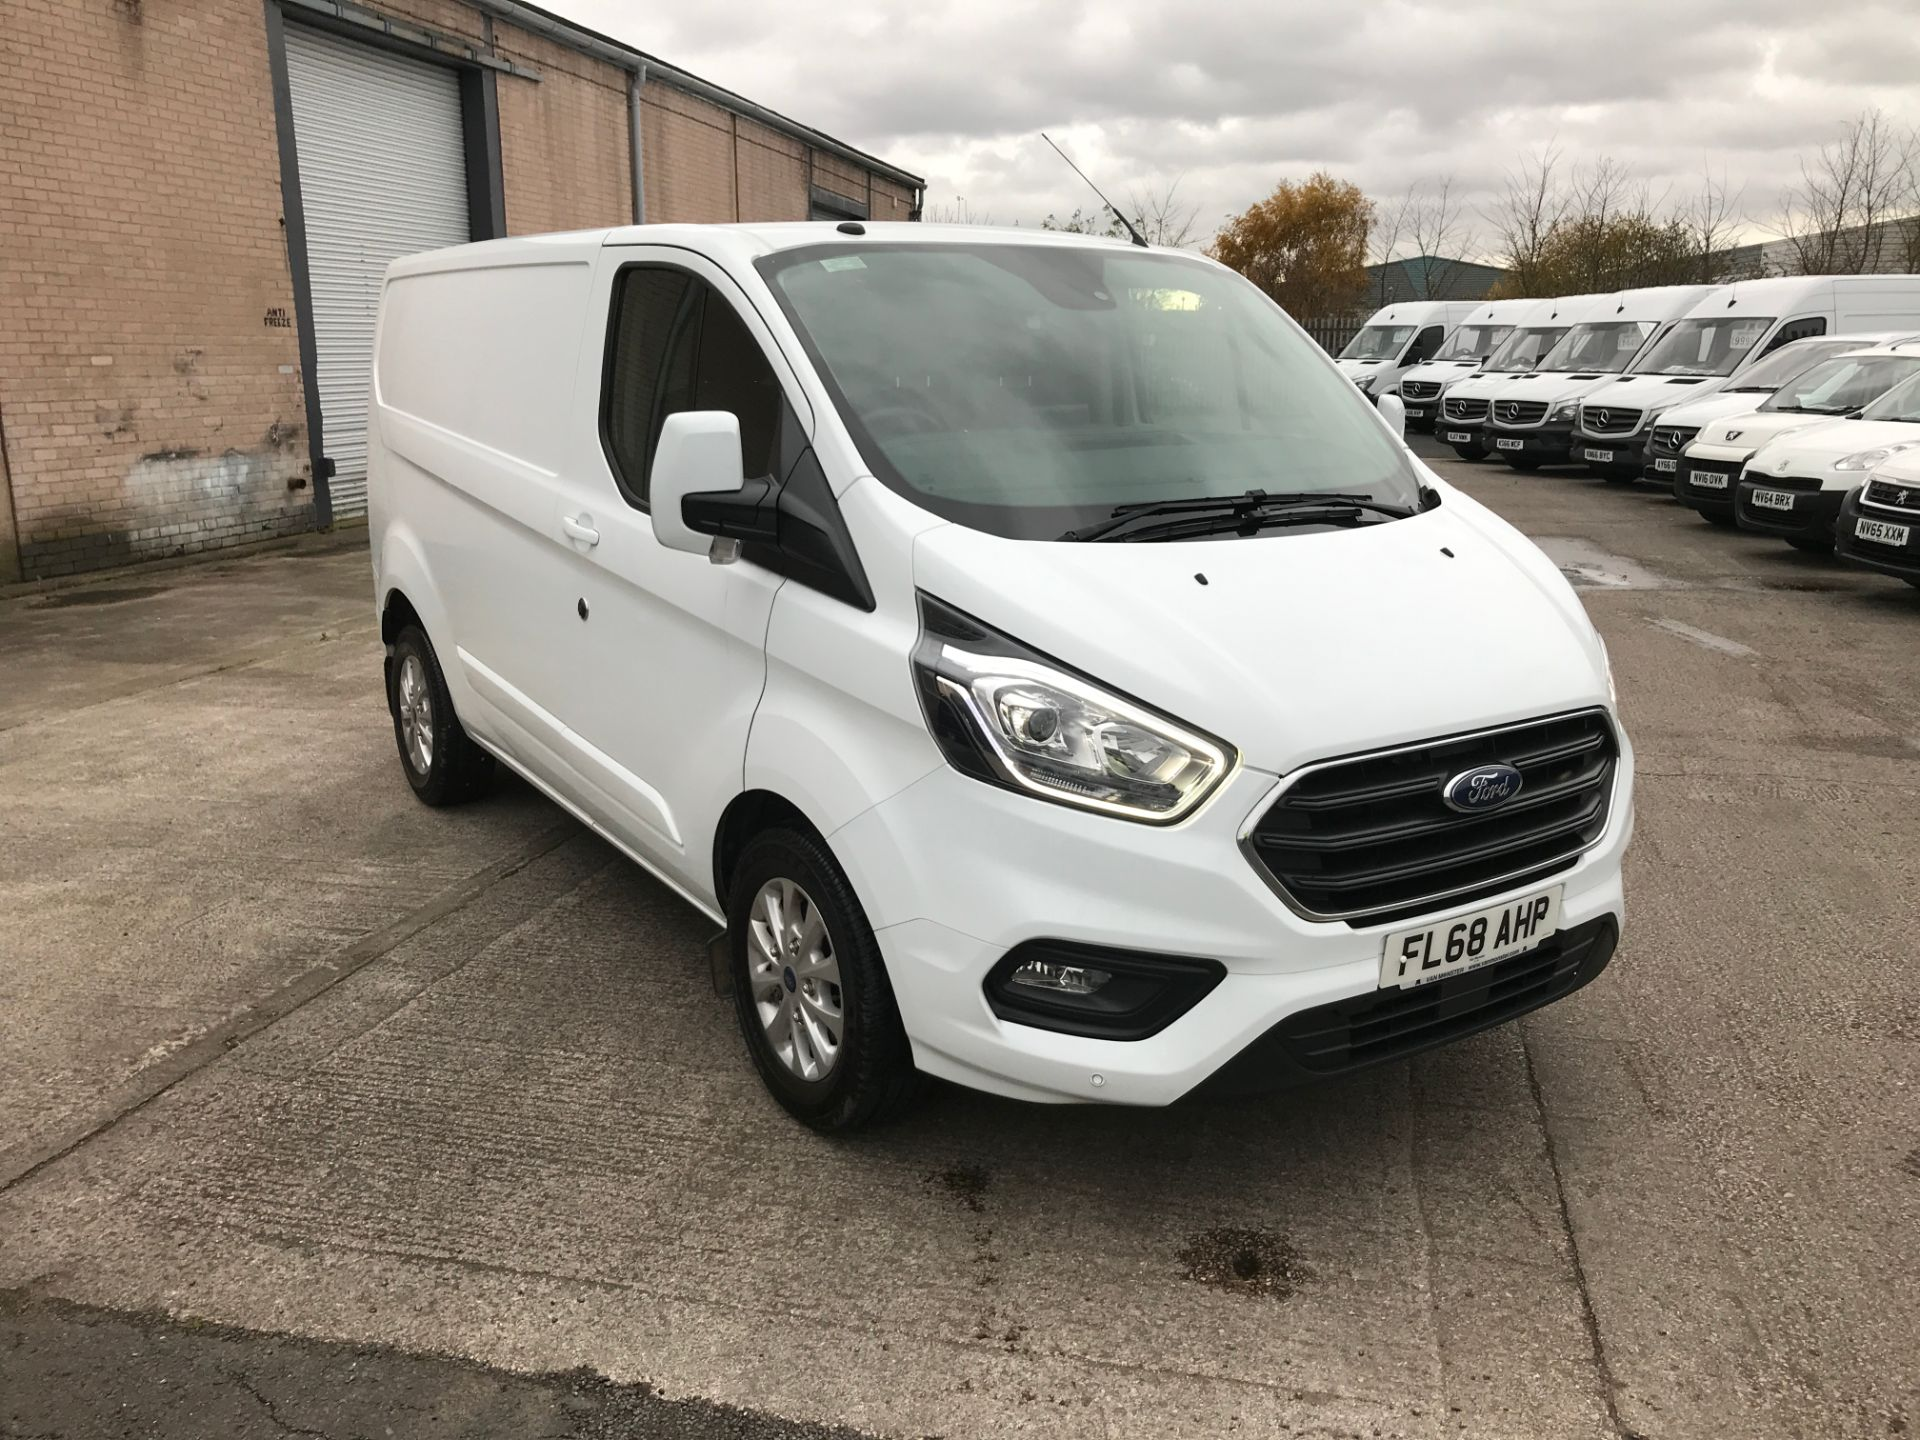 2018 Ford Transit Custom 340 L1 2.0TDCI ECOBLUE 130PS LOW ROOF LIMITED  EURO 6 (FL68AHP)